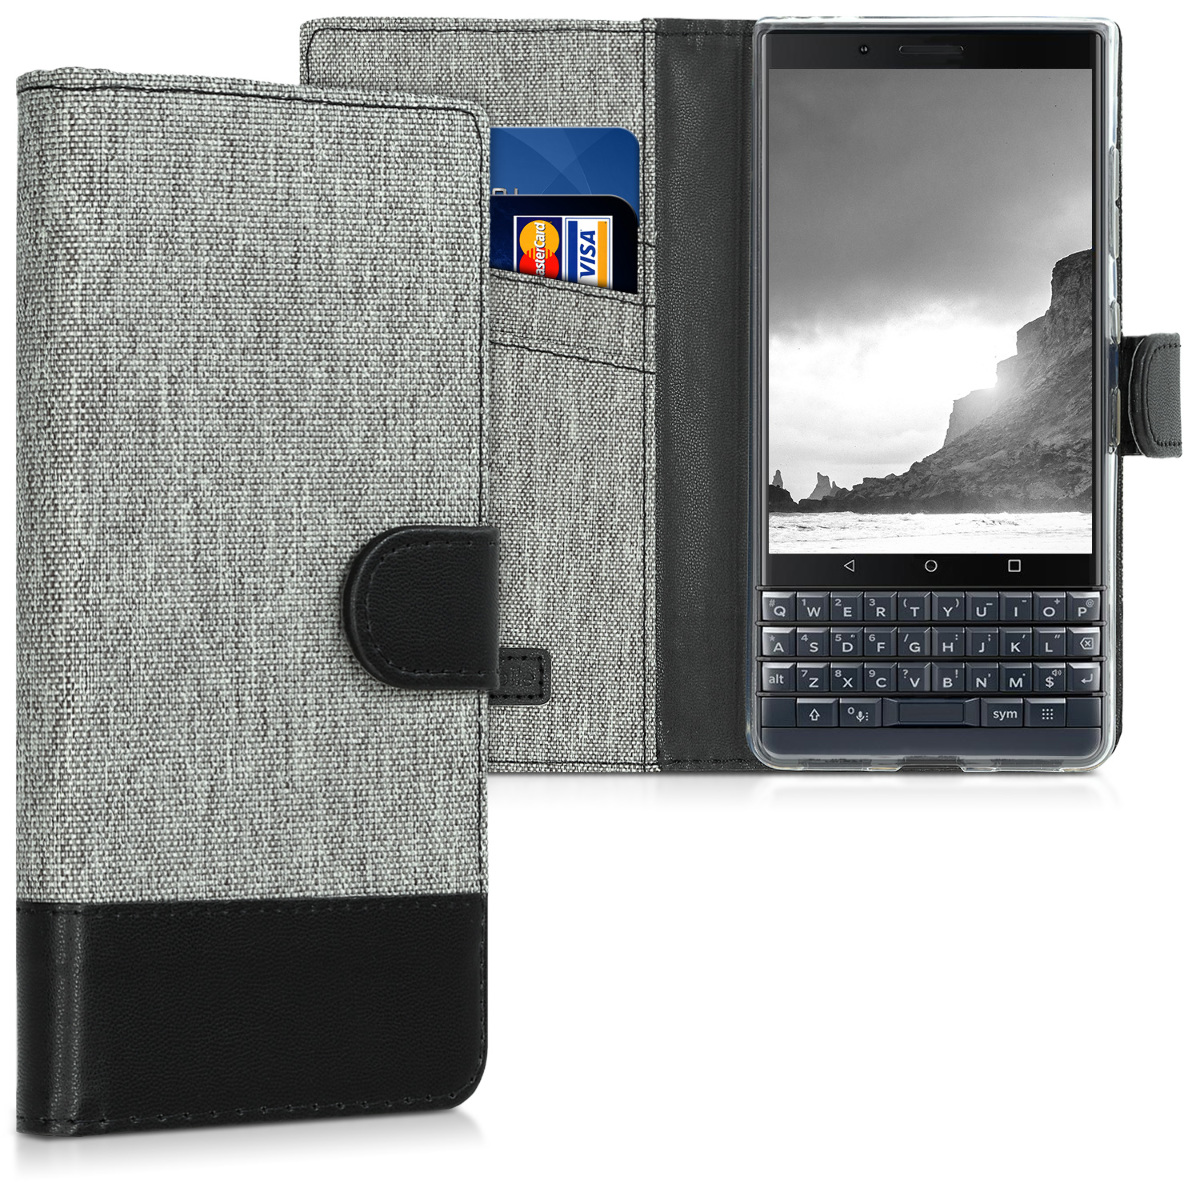 KW Θήκη - Πορτοφόλι Blackberry KEY2 LE (Lite) -  Grey / Black (46277.22)